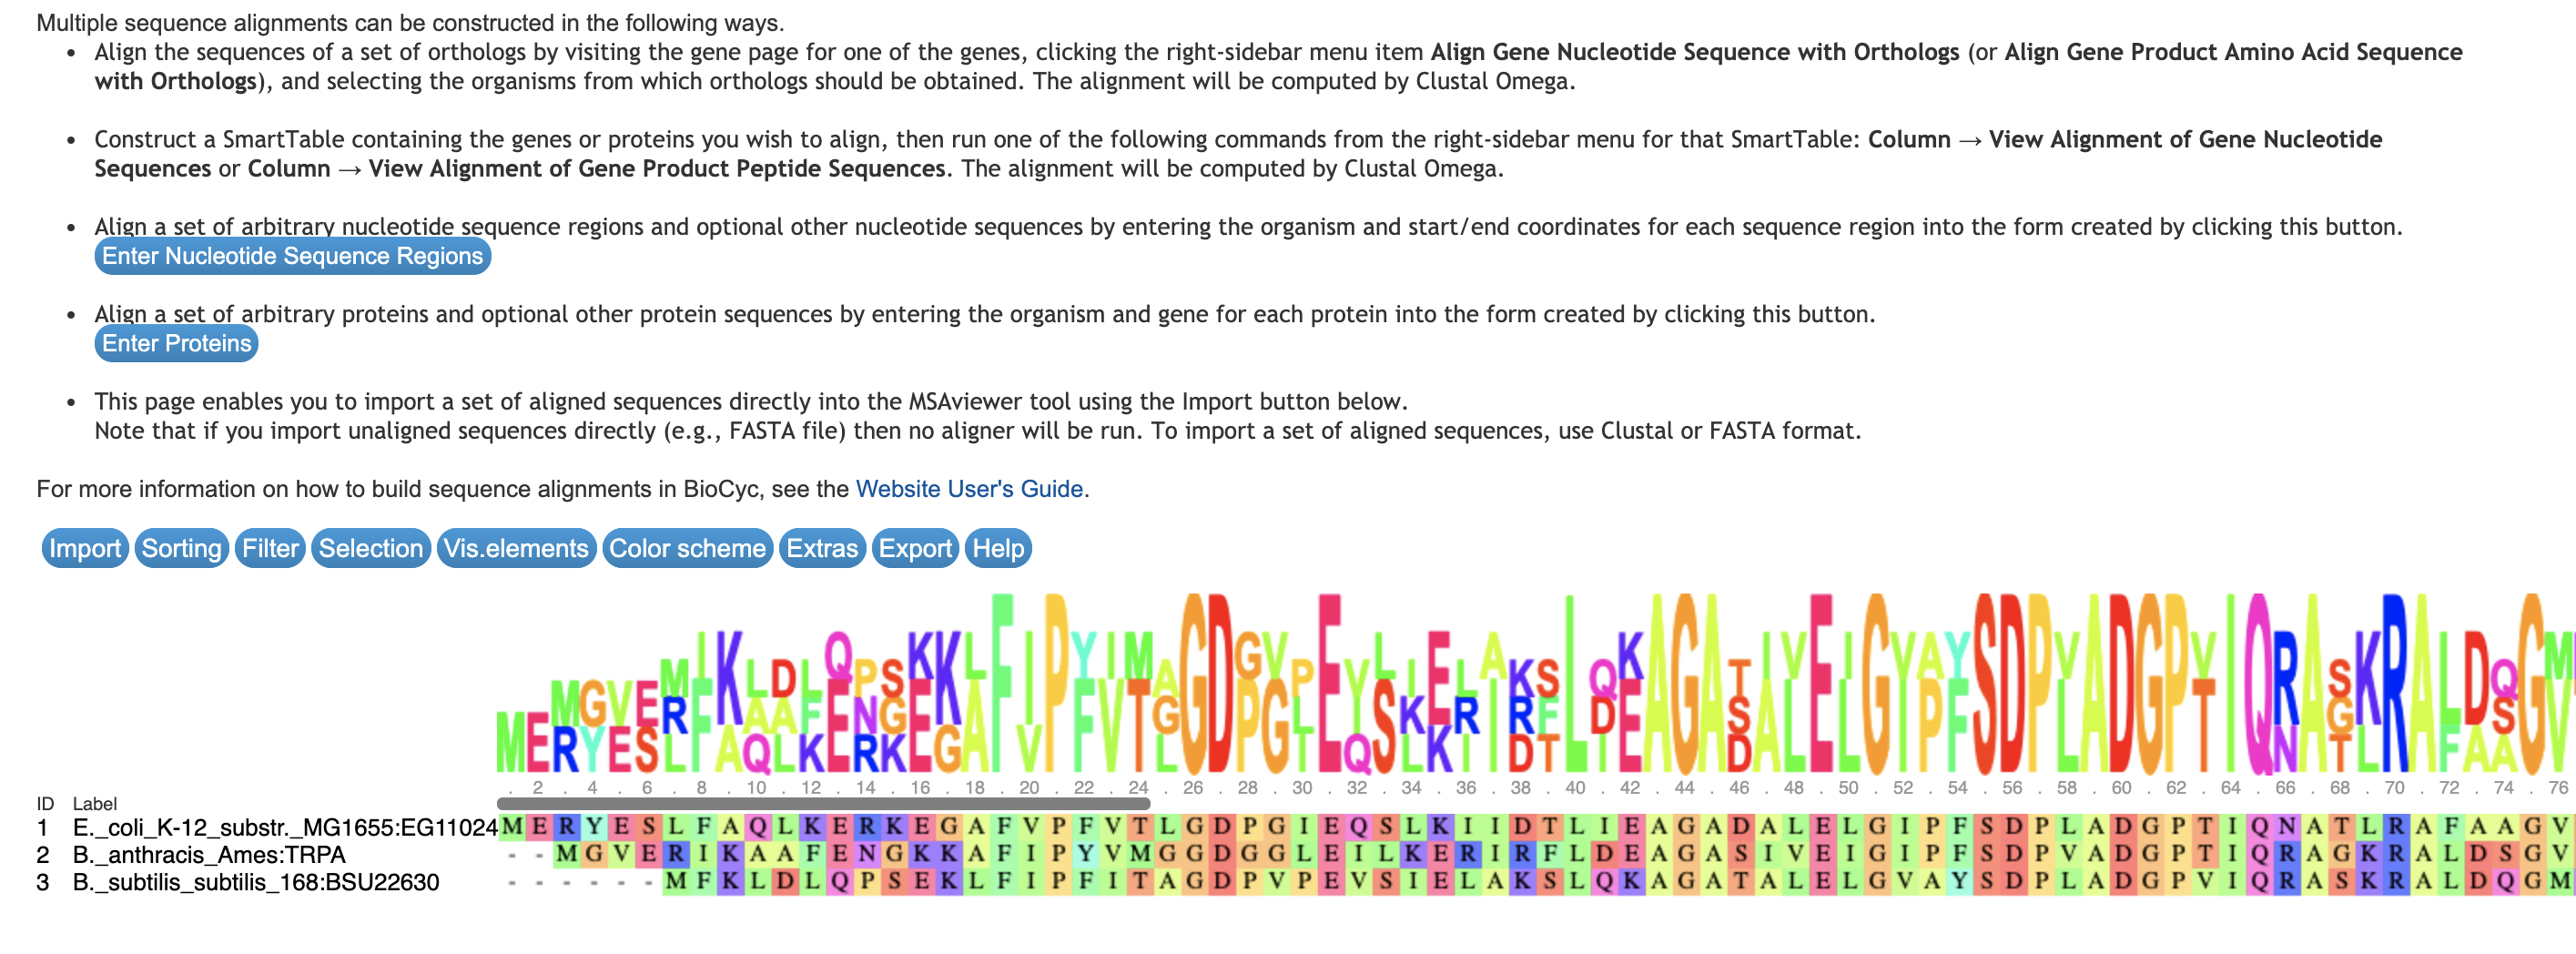 msa-images/MSA-Protein-display.png